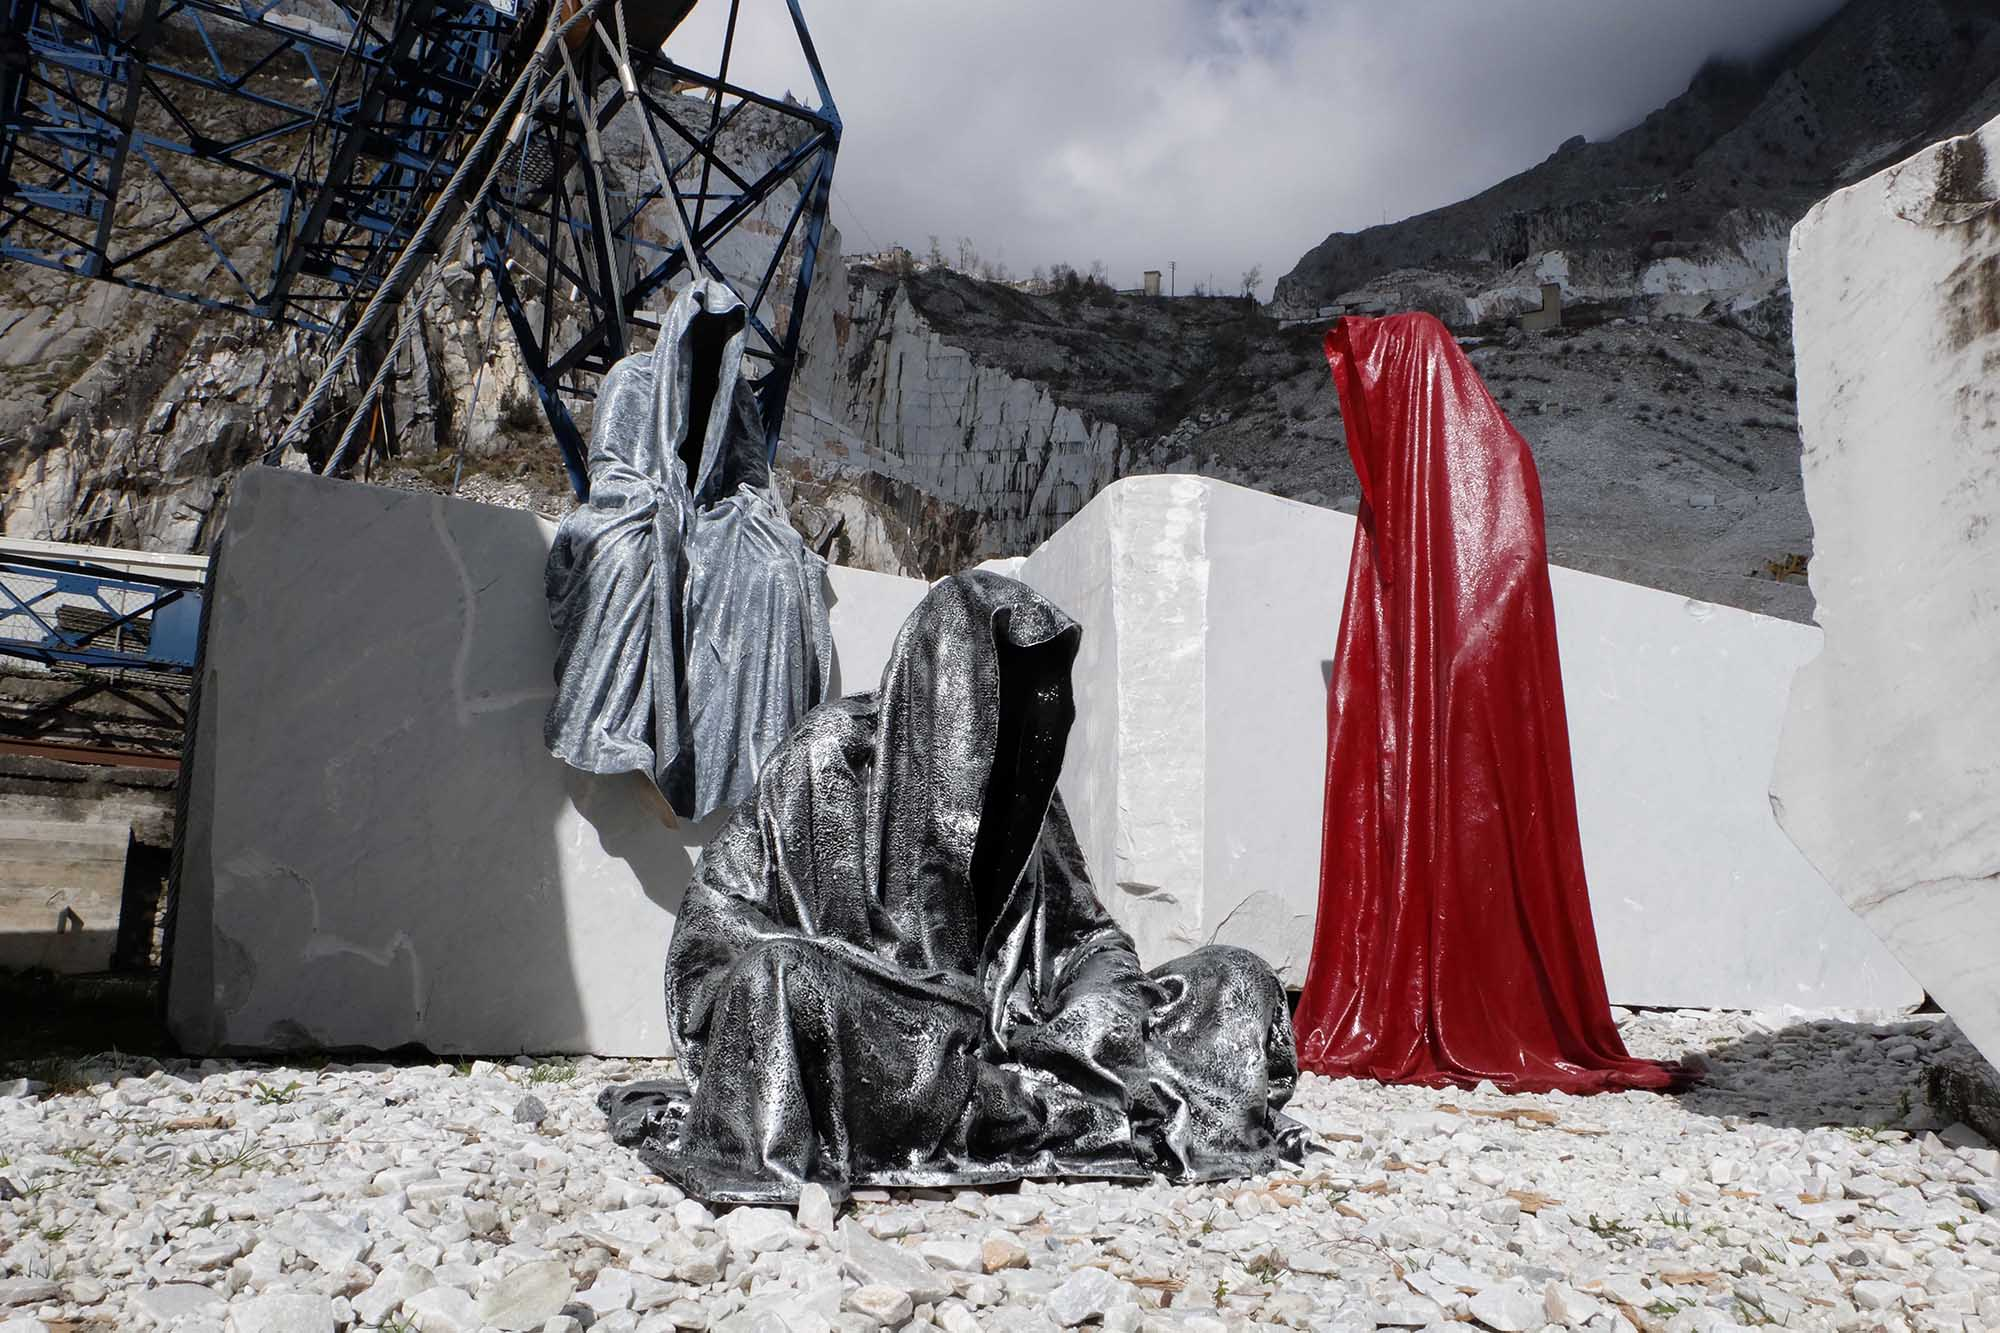 guardians of time manfred kili kielnhofer modern sculpture contemporary fine art design arts statue faceless religion stone marble carrara 0998